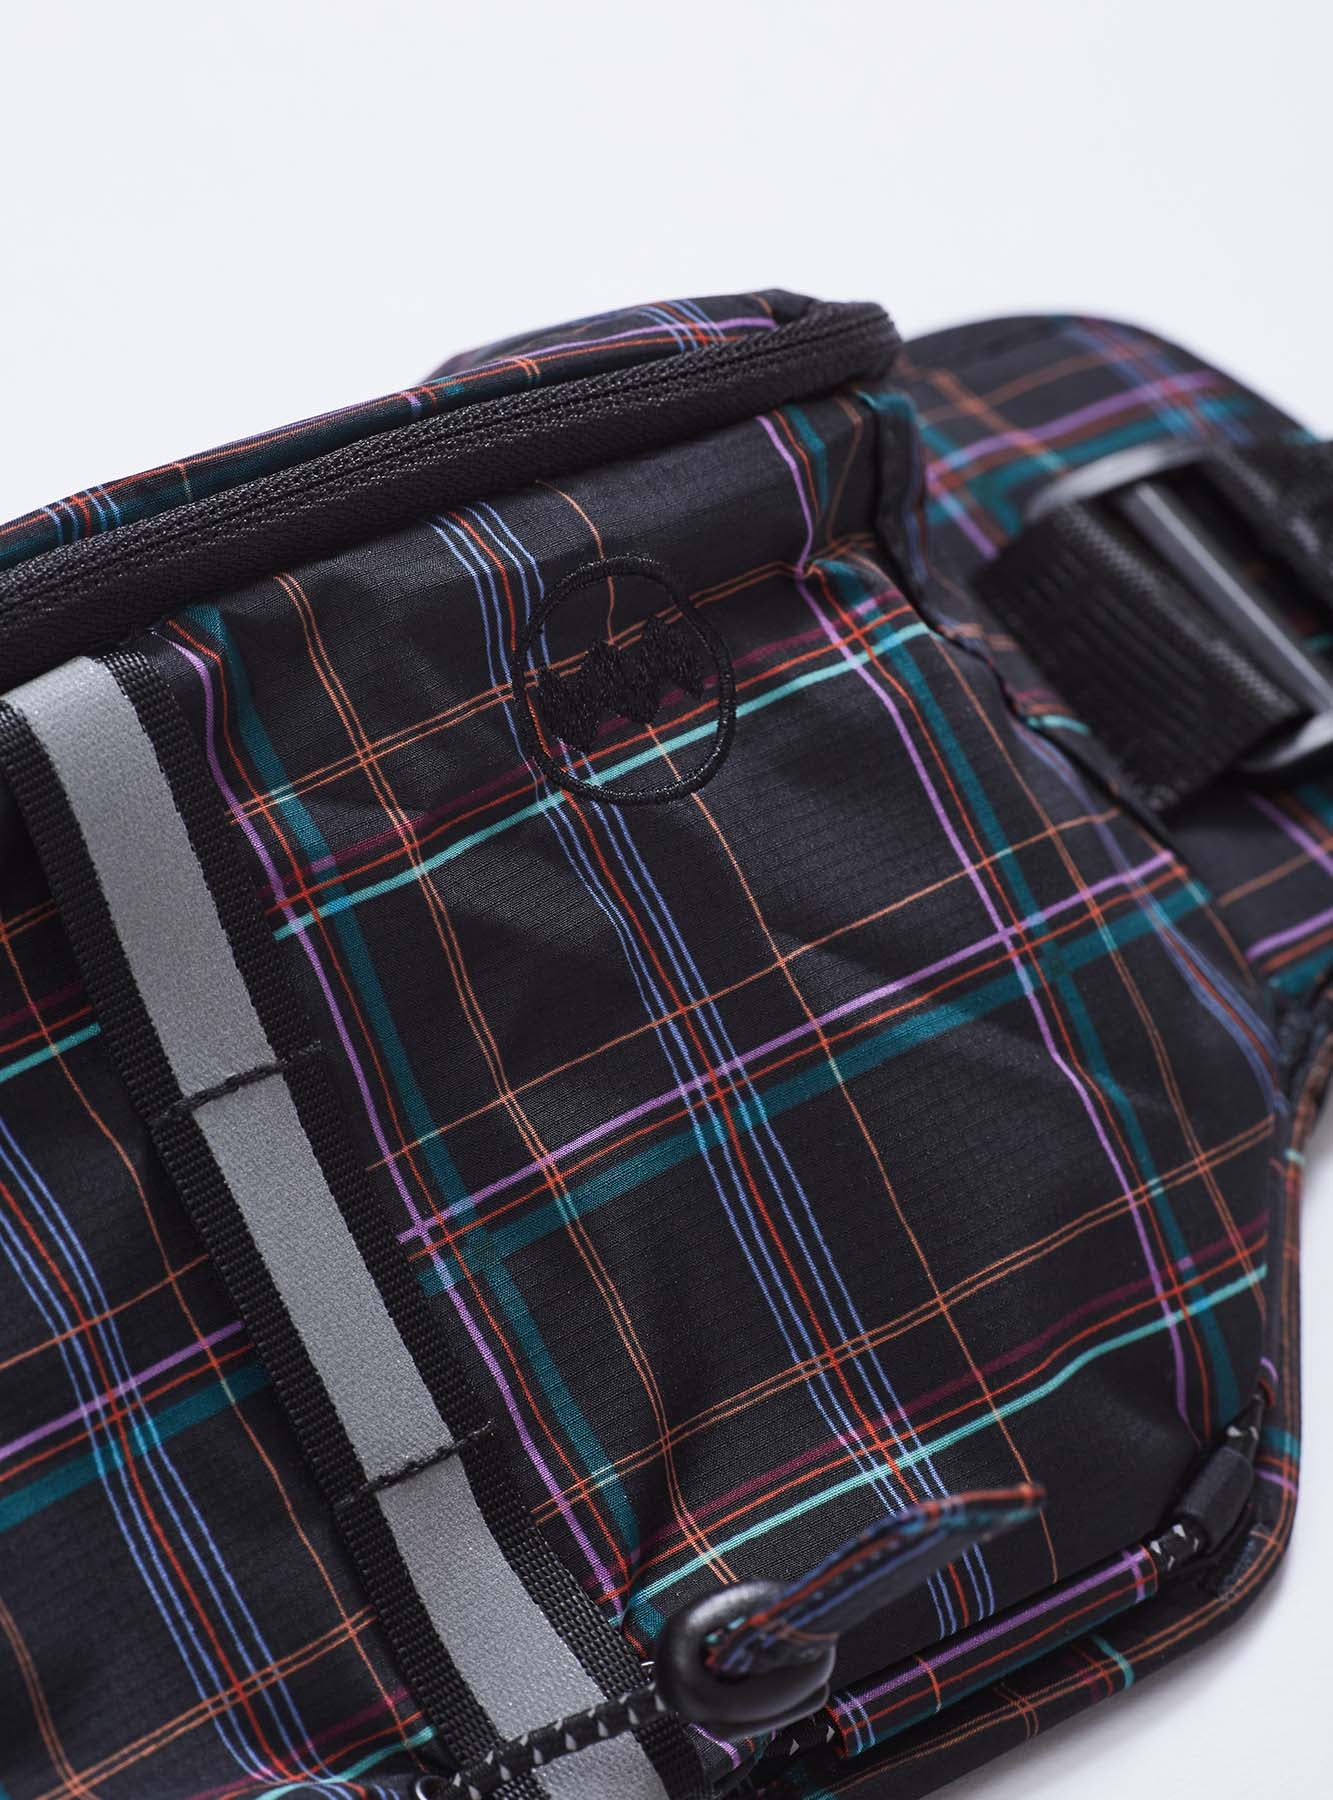 Multipass Sling Bag in Midnight Plaid